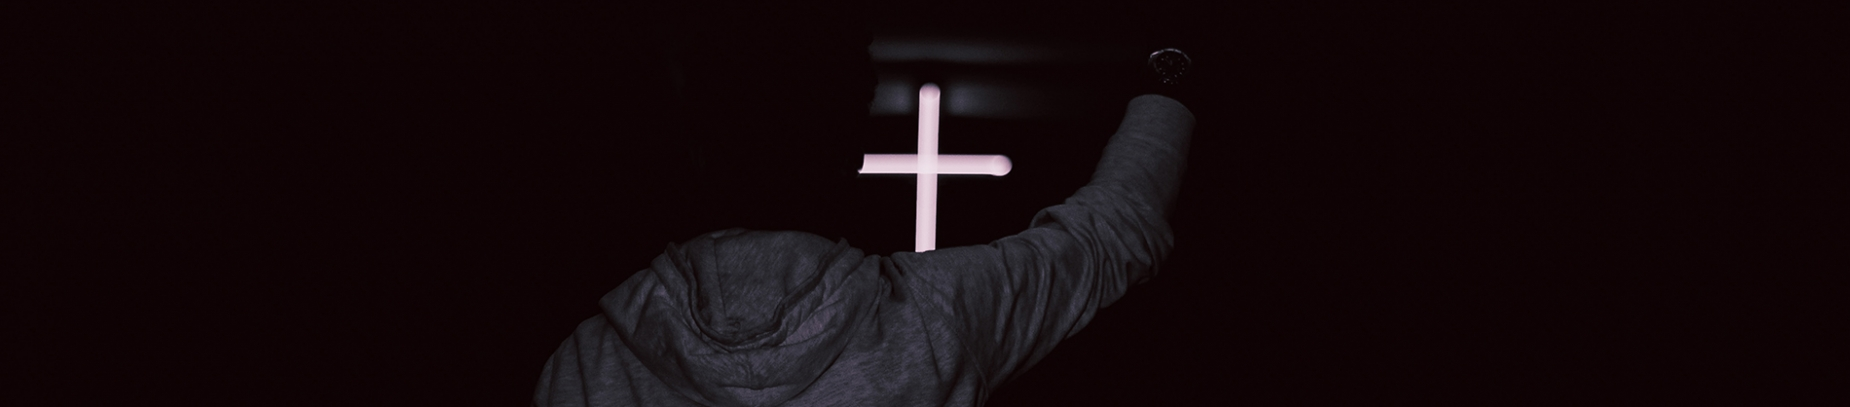 A guy with his arm up in praise in front of a glowing cross